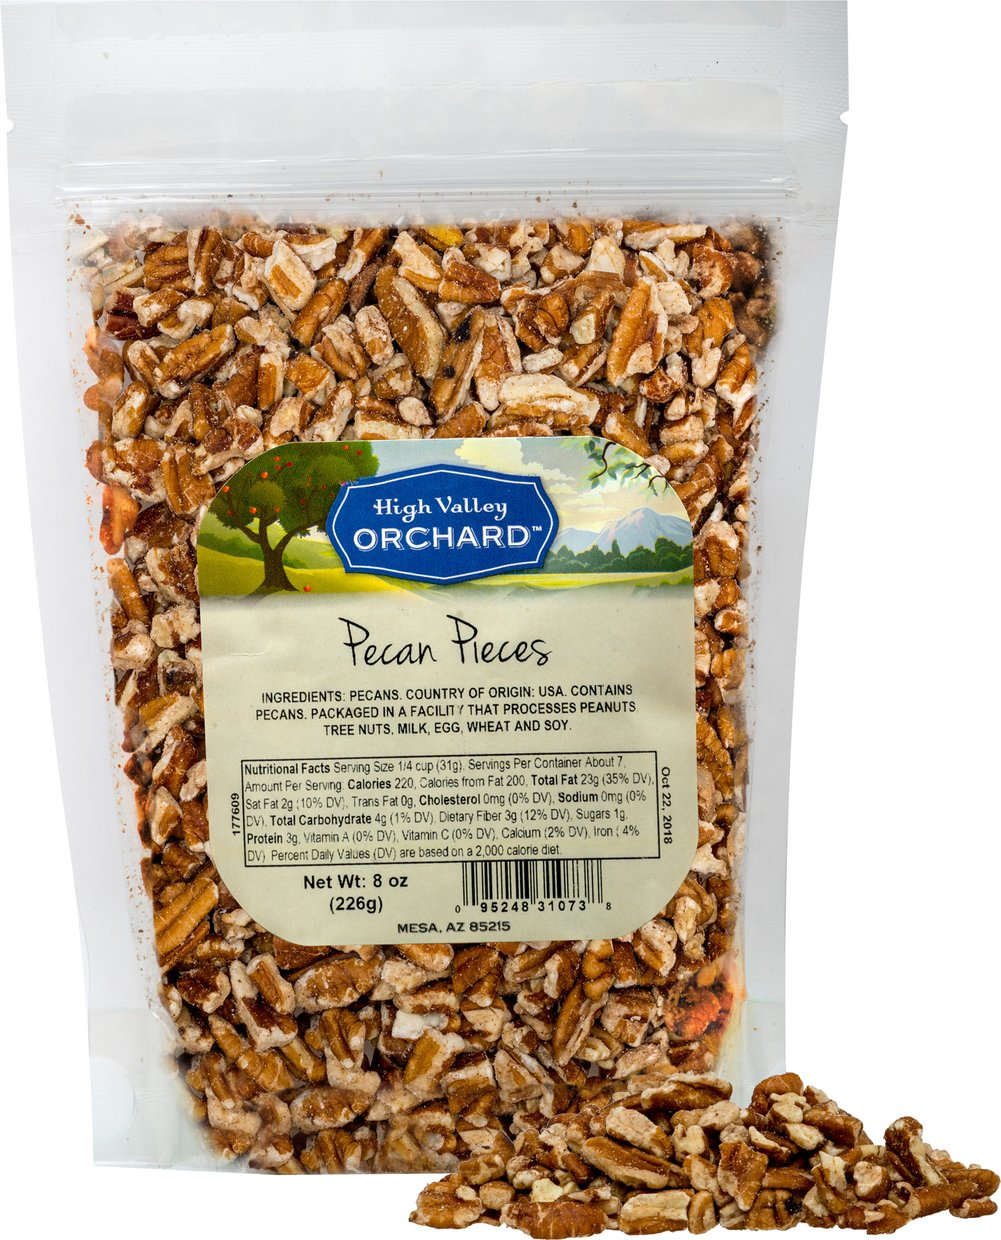 Pecan Pieces <p><strong>From the Manufacturer:</strong></p><p><strong></strong>These raw Pecan Pieces have all the flavor of the Halves, in miniature. Add them to any dessert for just the right touch of nut and crunch! These are great as toppings and mix-ins for ice cream, cakes, cookies, and many other recipes.</p> 8 oz Bag  $10.99